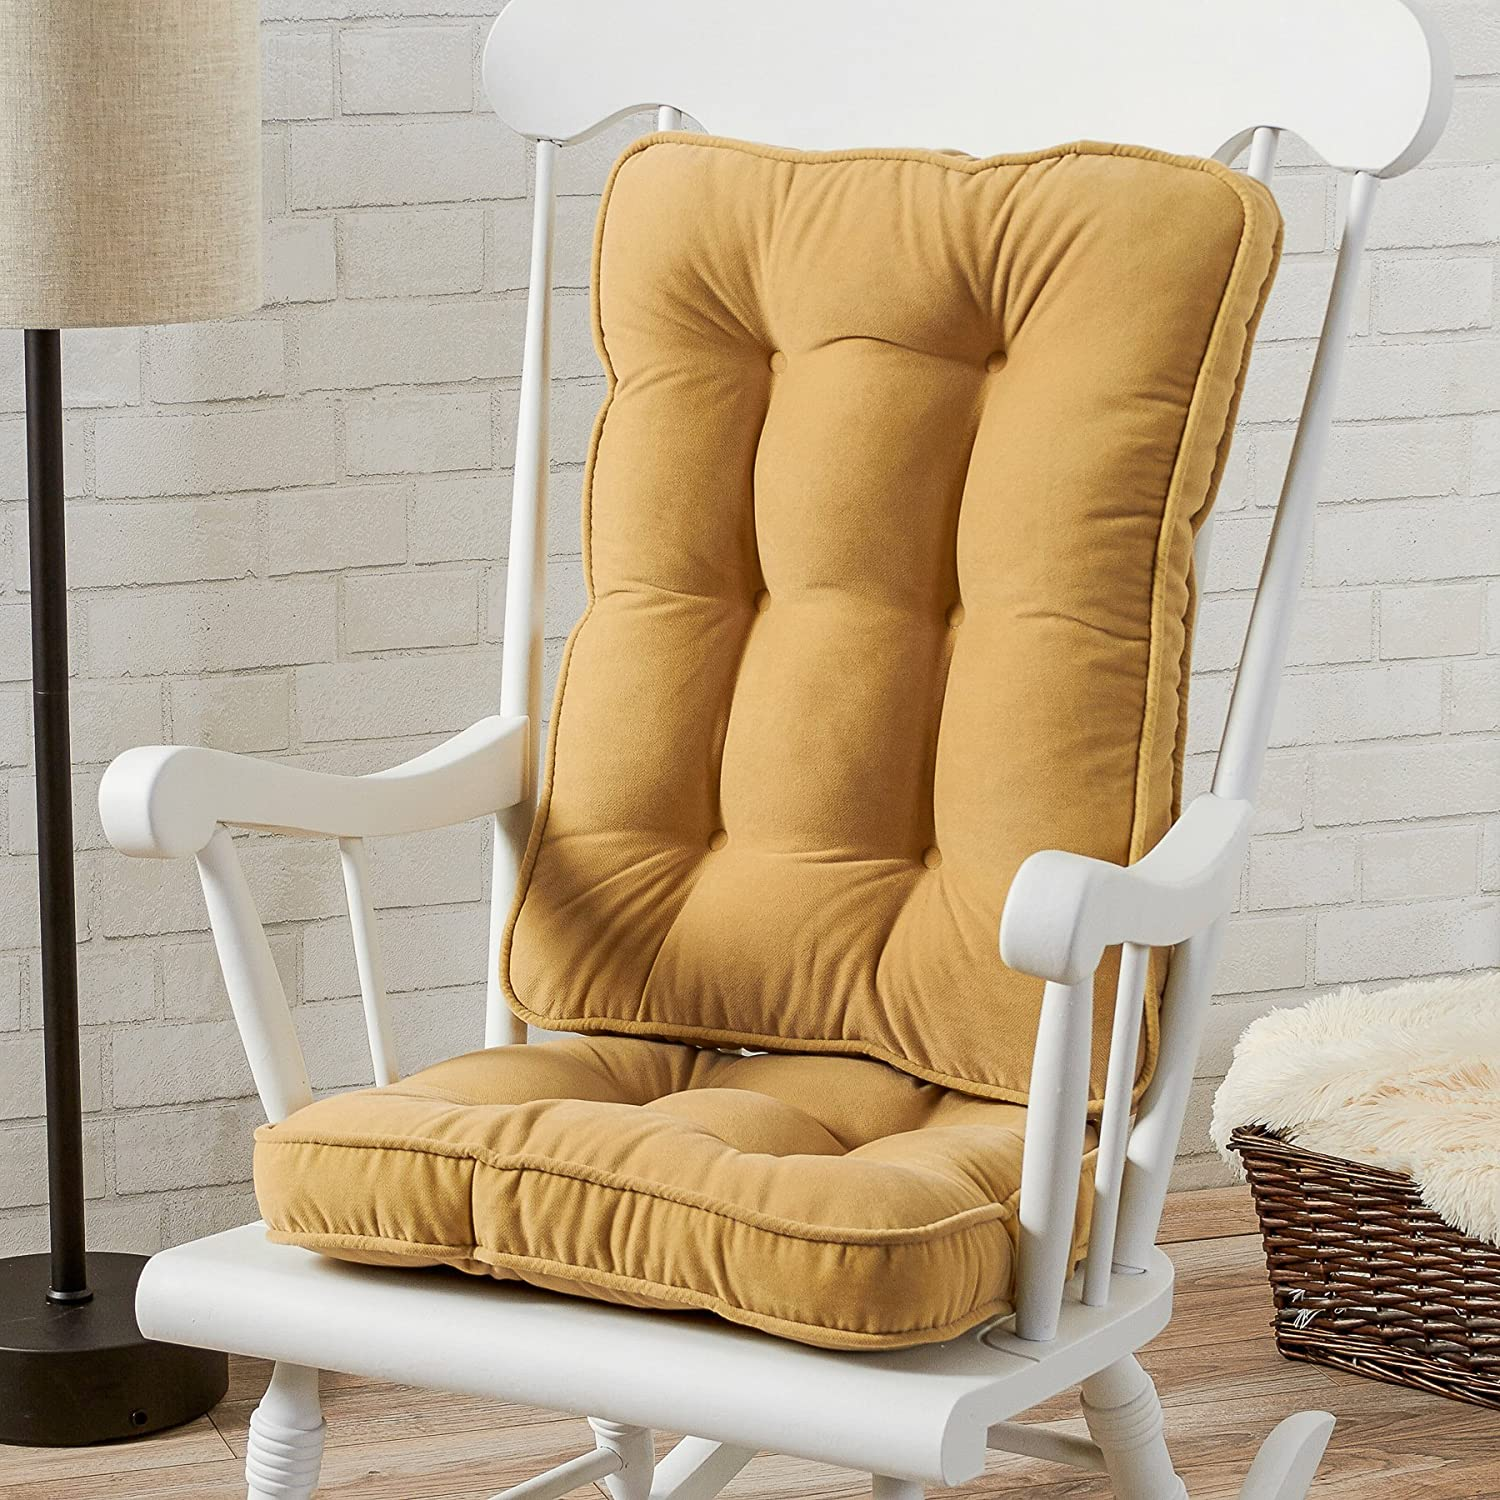 Amazon Greendale Home Fashions Standard Rocking Chair Cushion